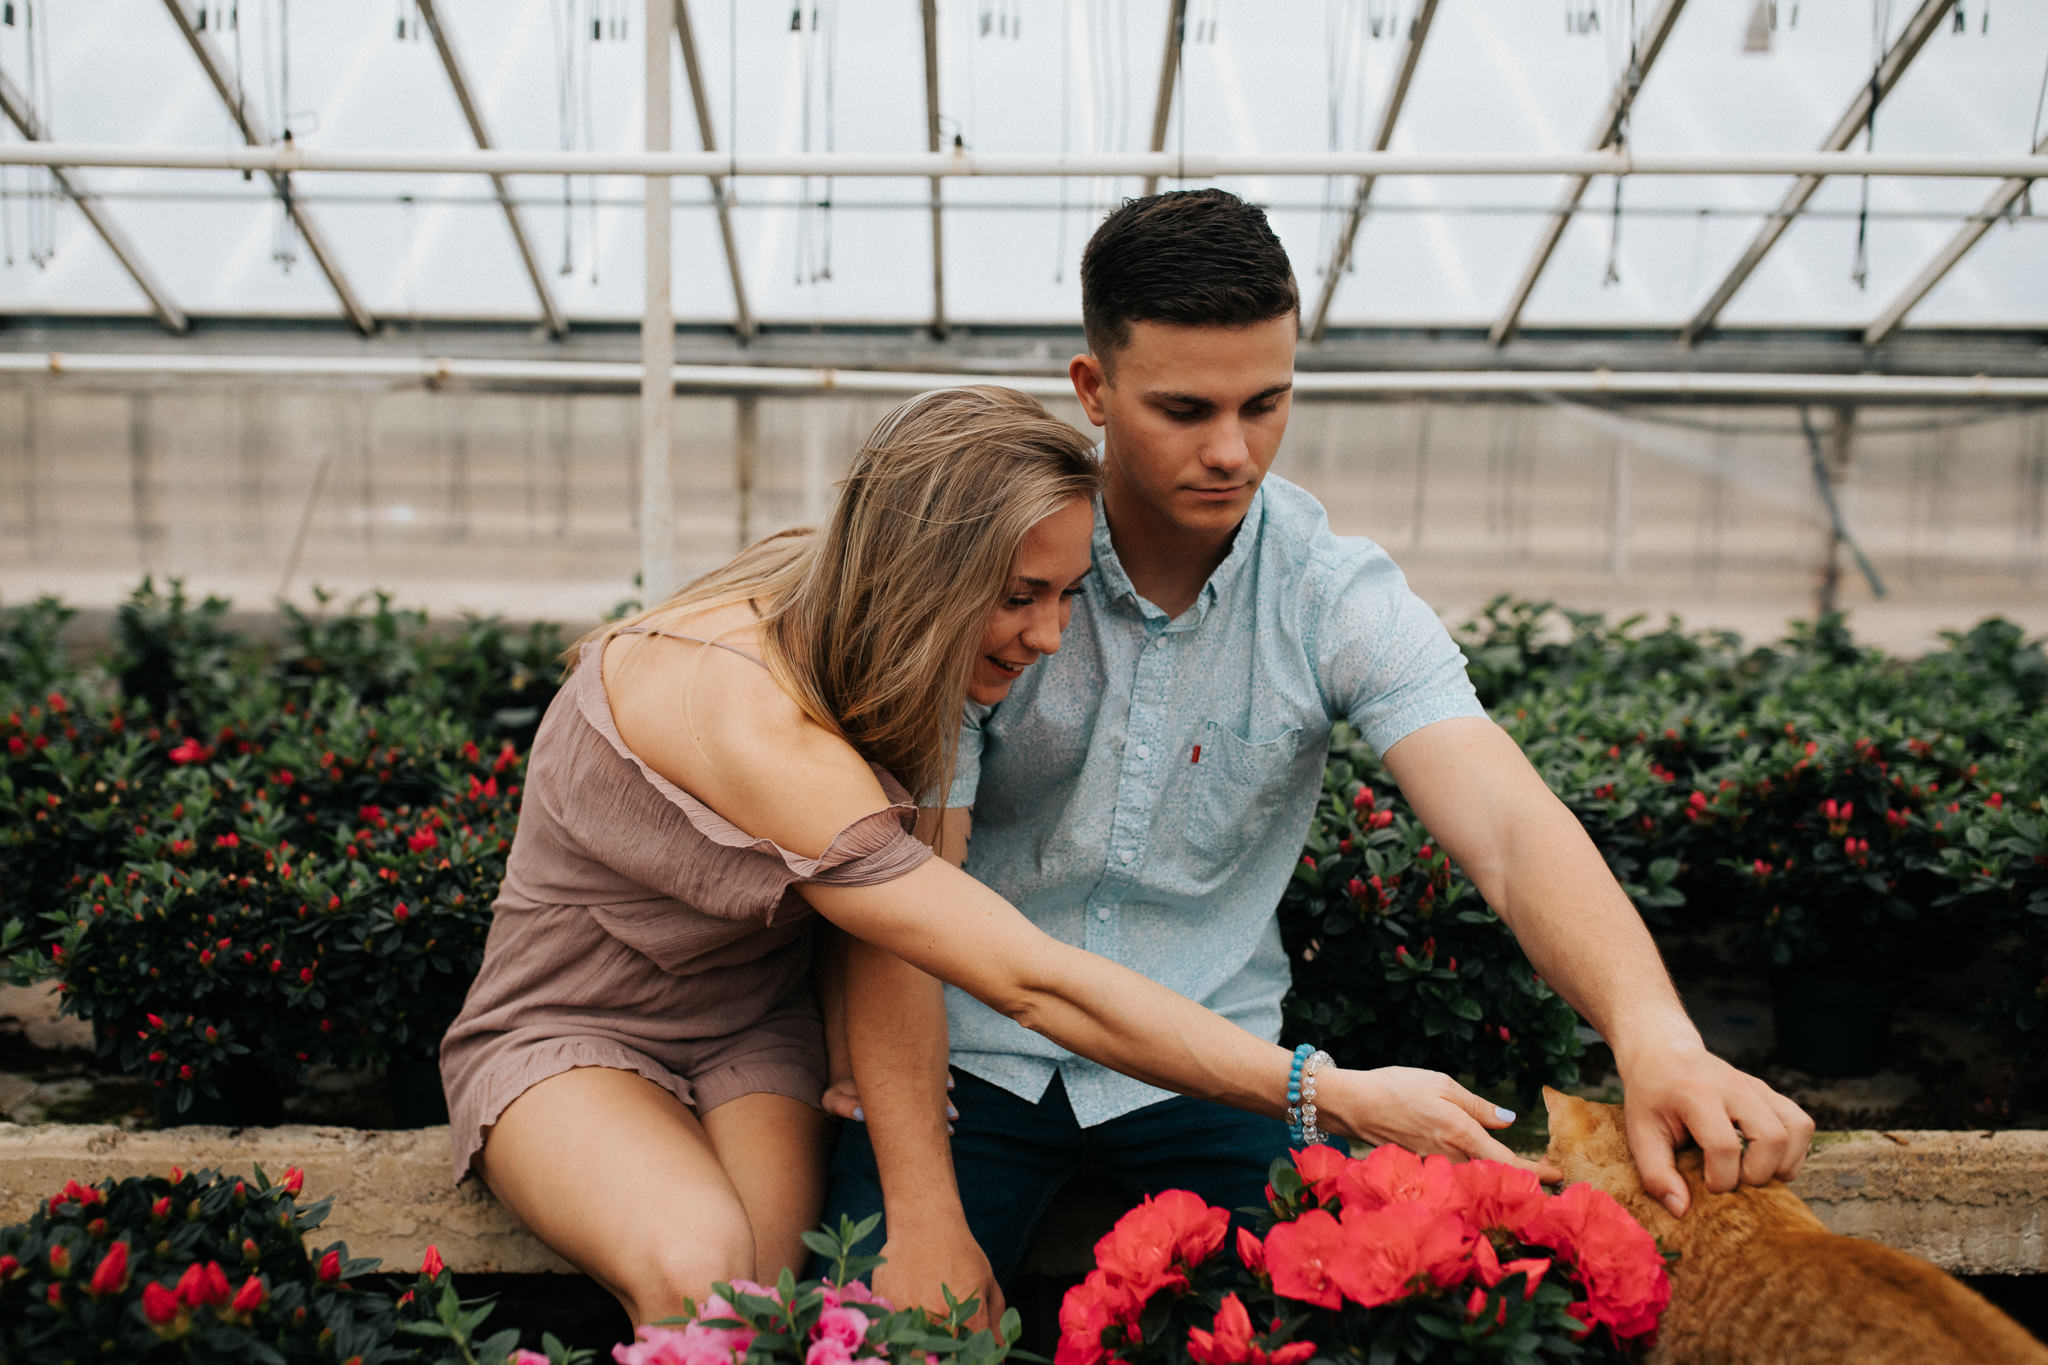 memphis-engagement-photographer-thewarmtharoundyou-greenhouse-engagement-pictures (102 of 118).jpg